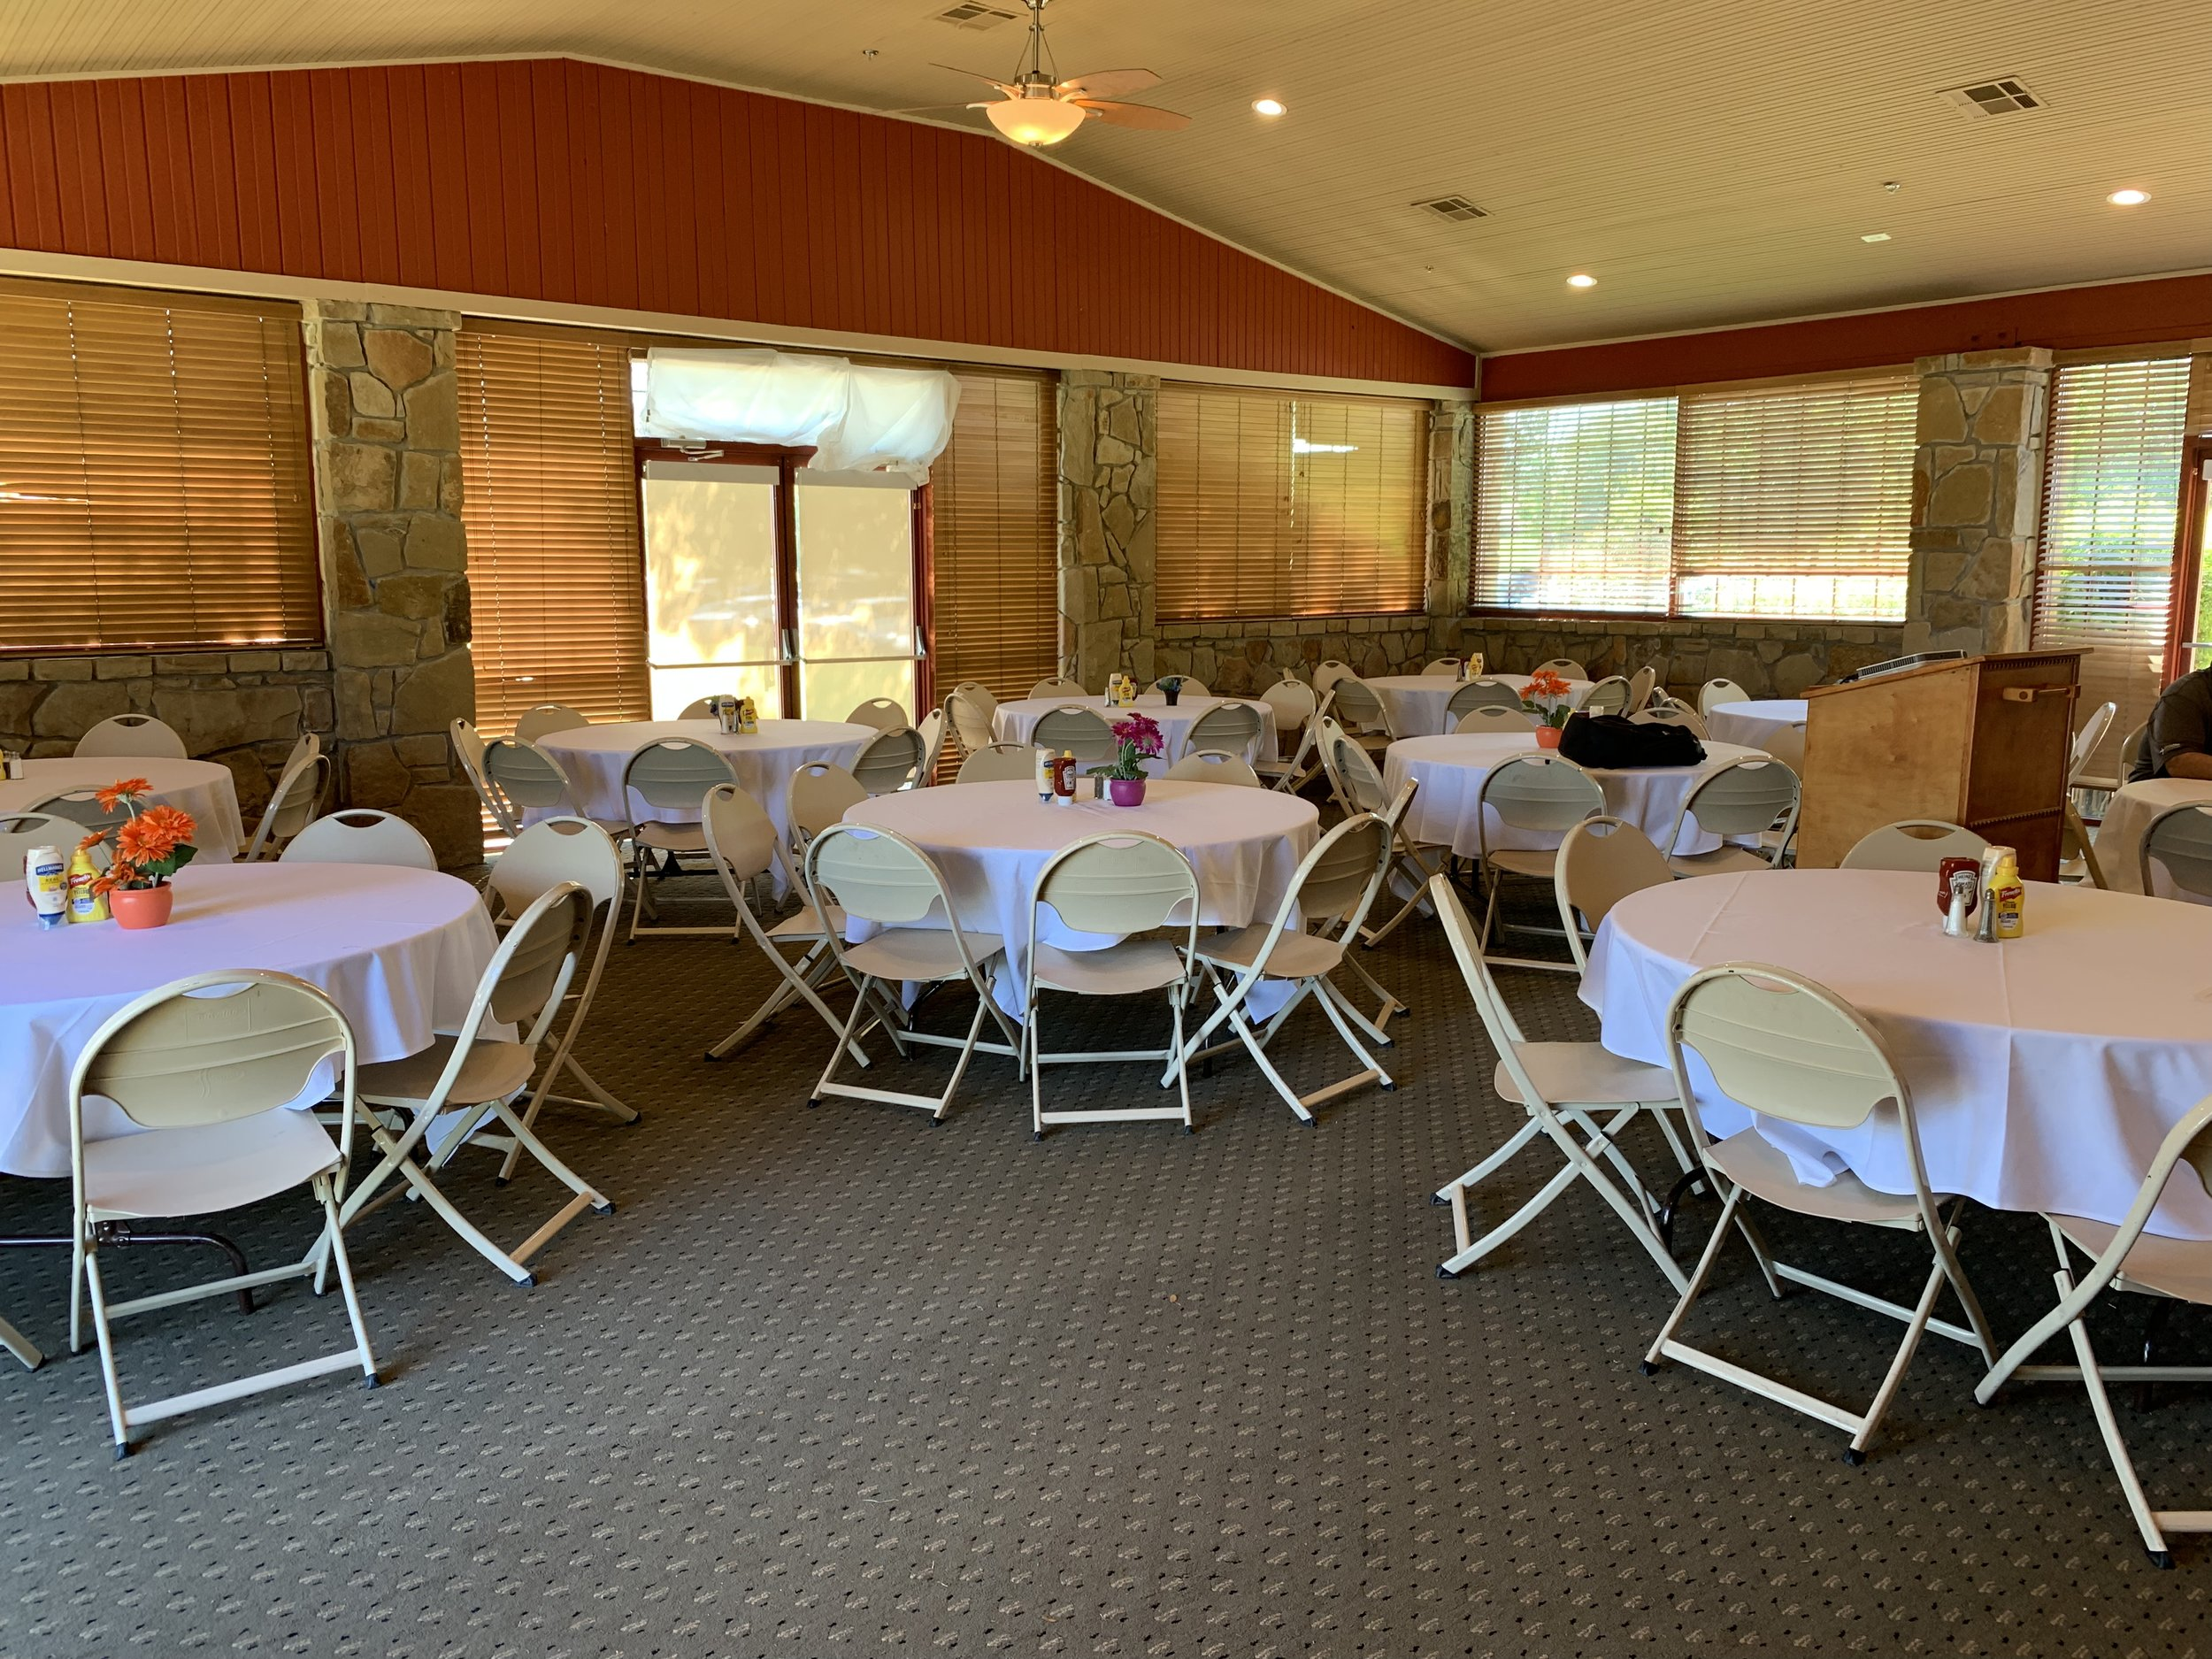 Photo Apr 26, 11 06 35 AM.jpg